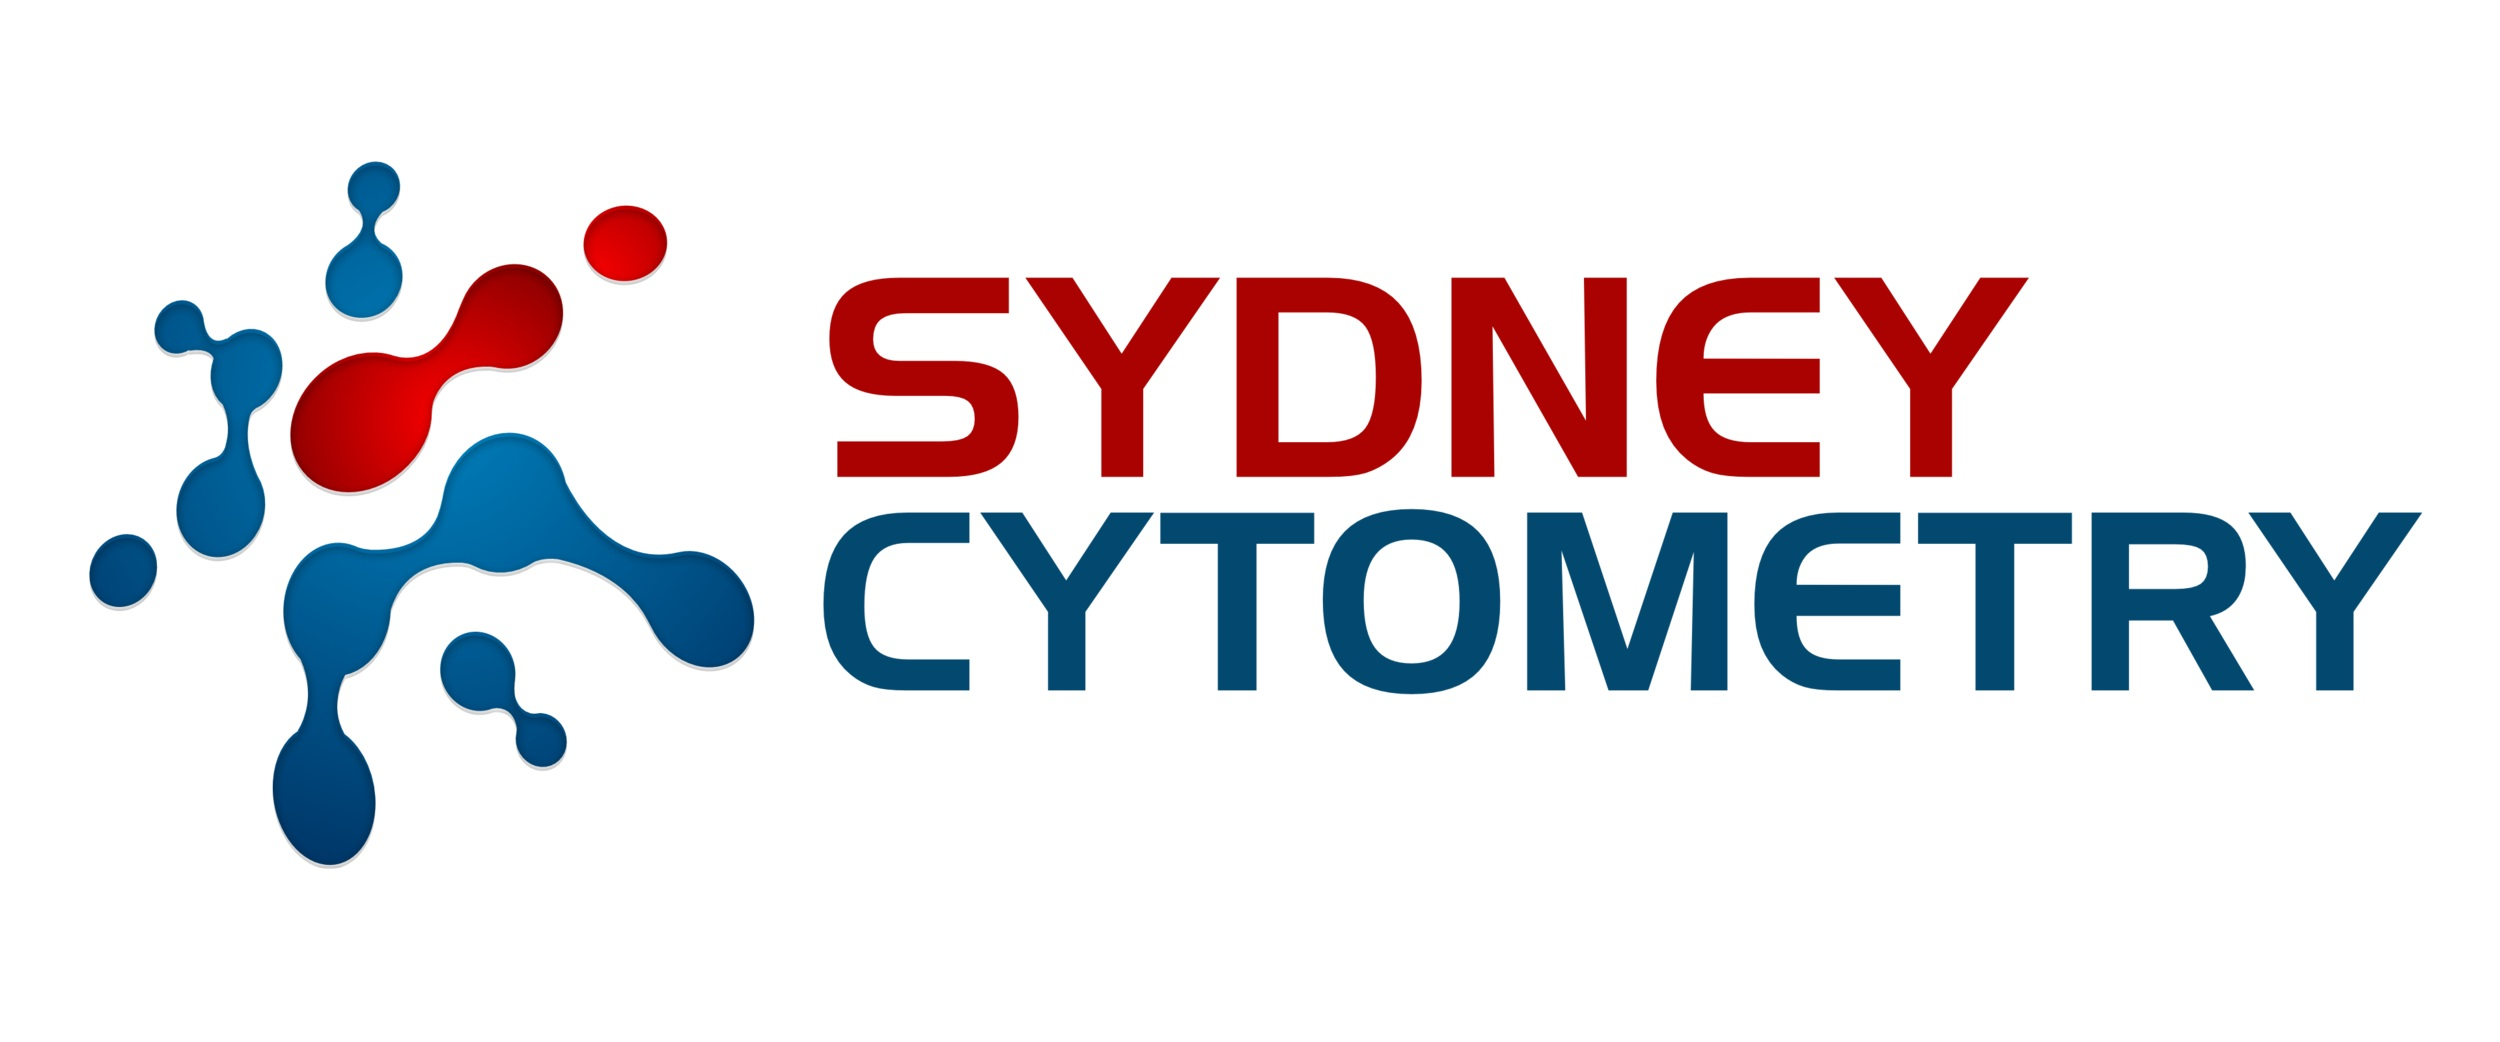 Sydney Cytometry No White Space (1).png